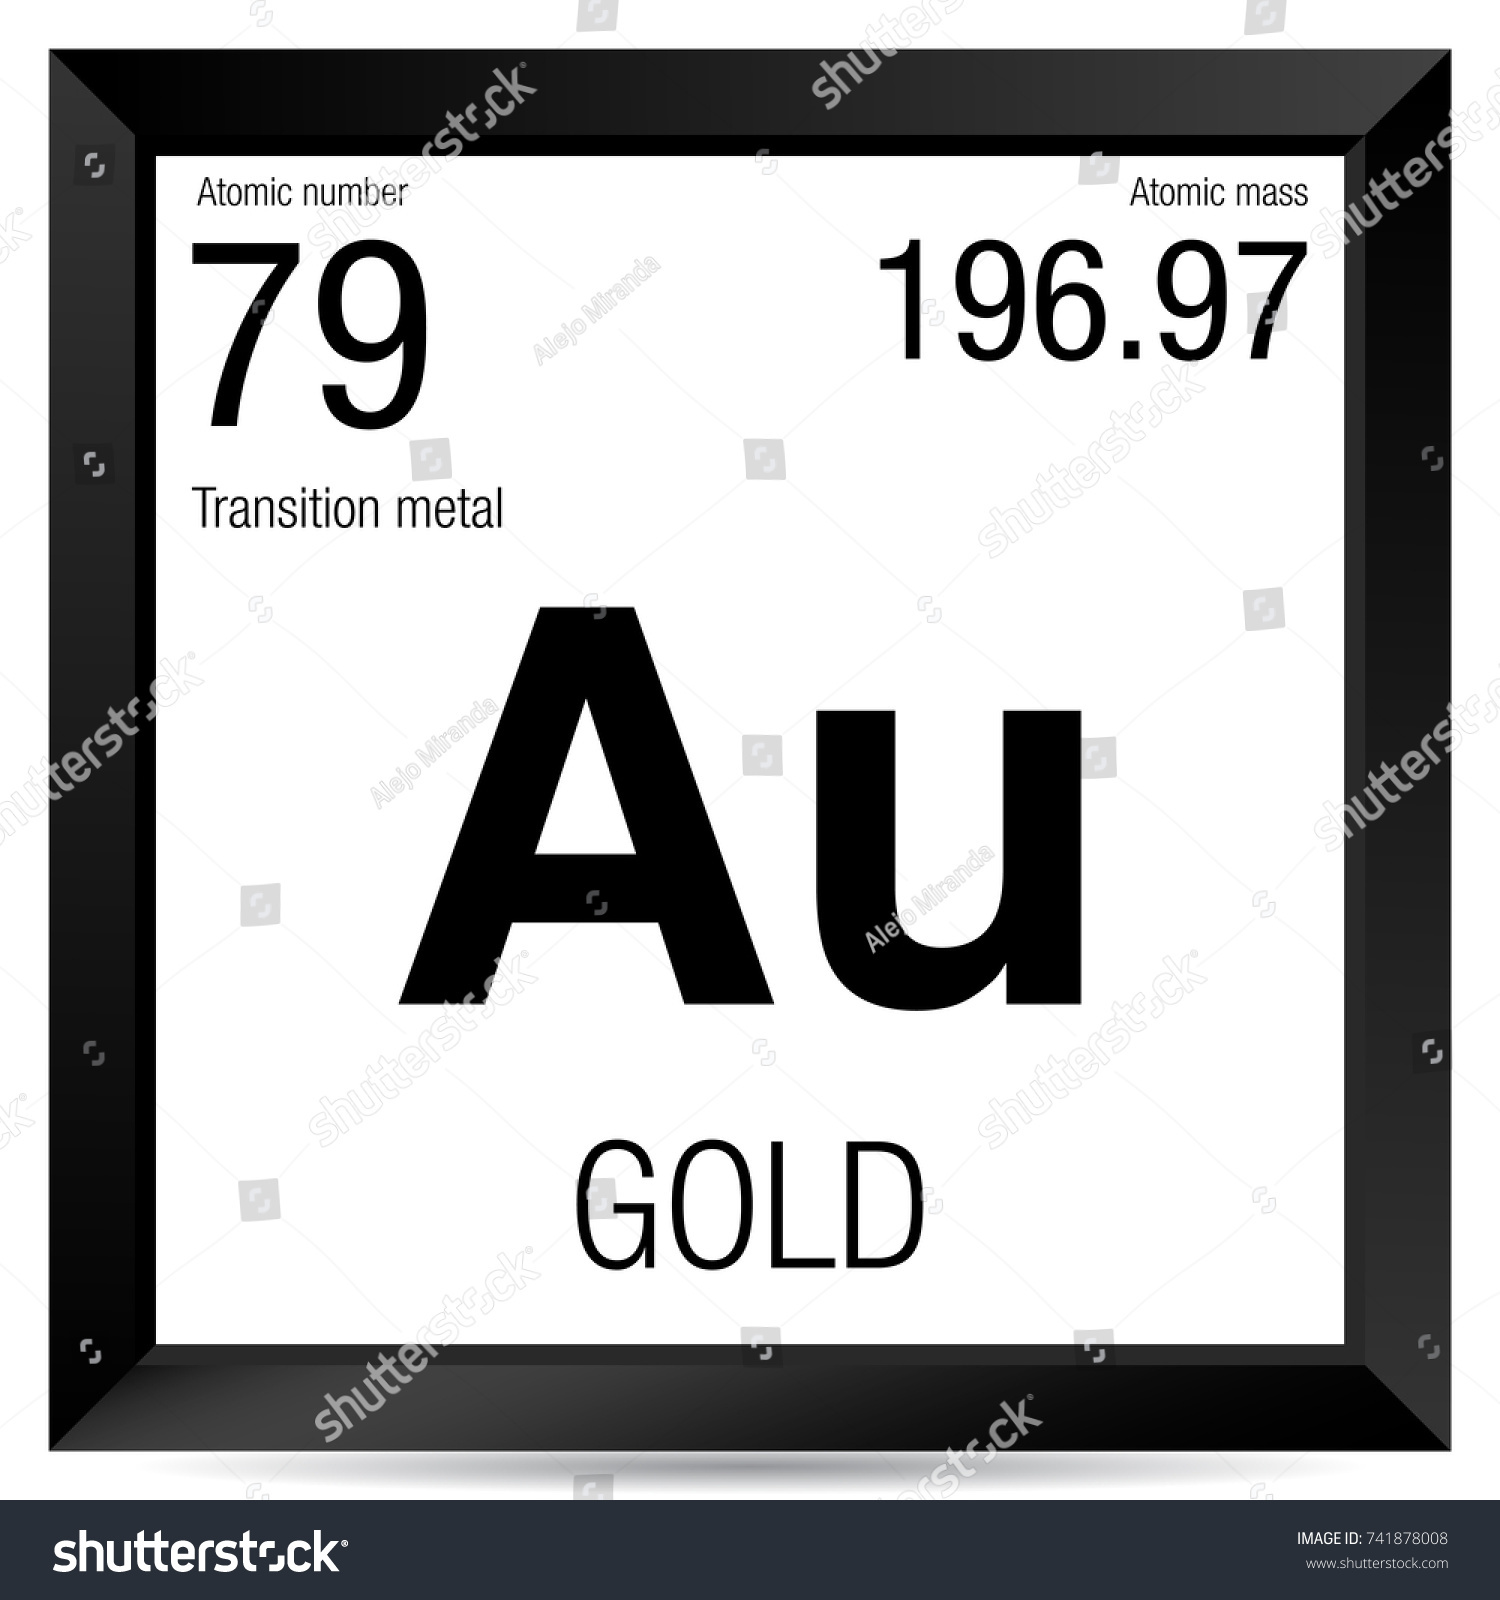 Periodic table symbol for gold choice image periodic table images what is the symbol for gold in the periodic table images what is the periodic table gamestrikefo Gallery